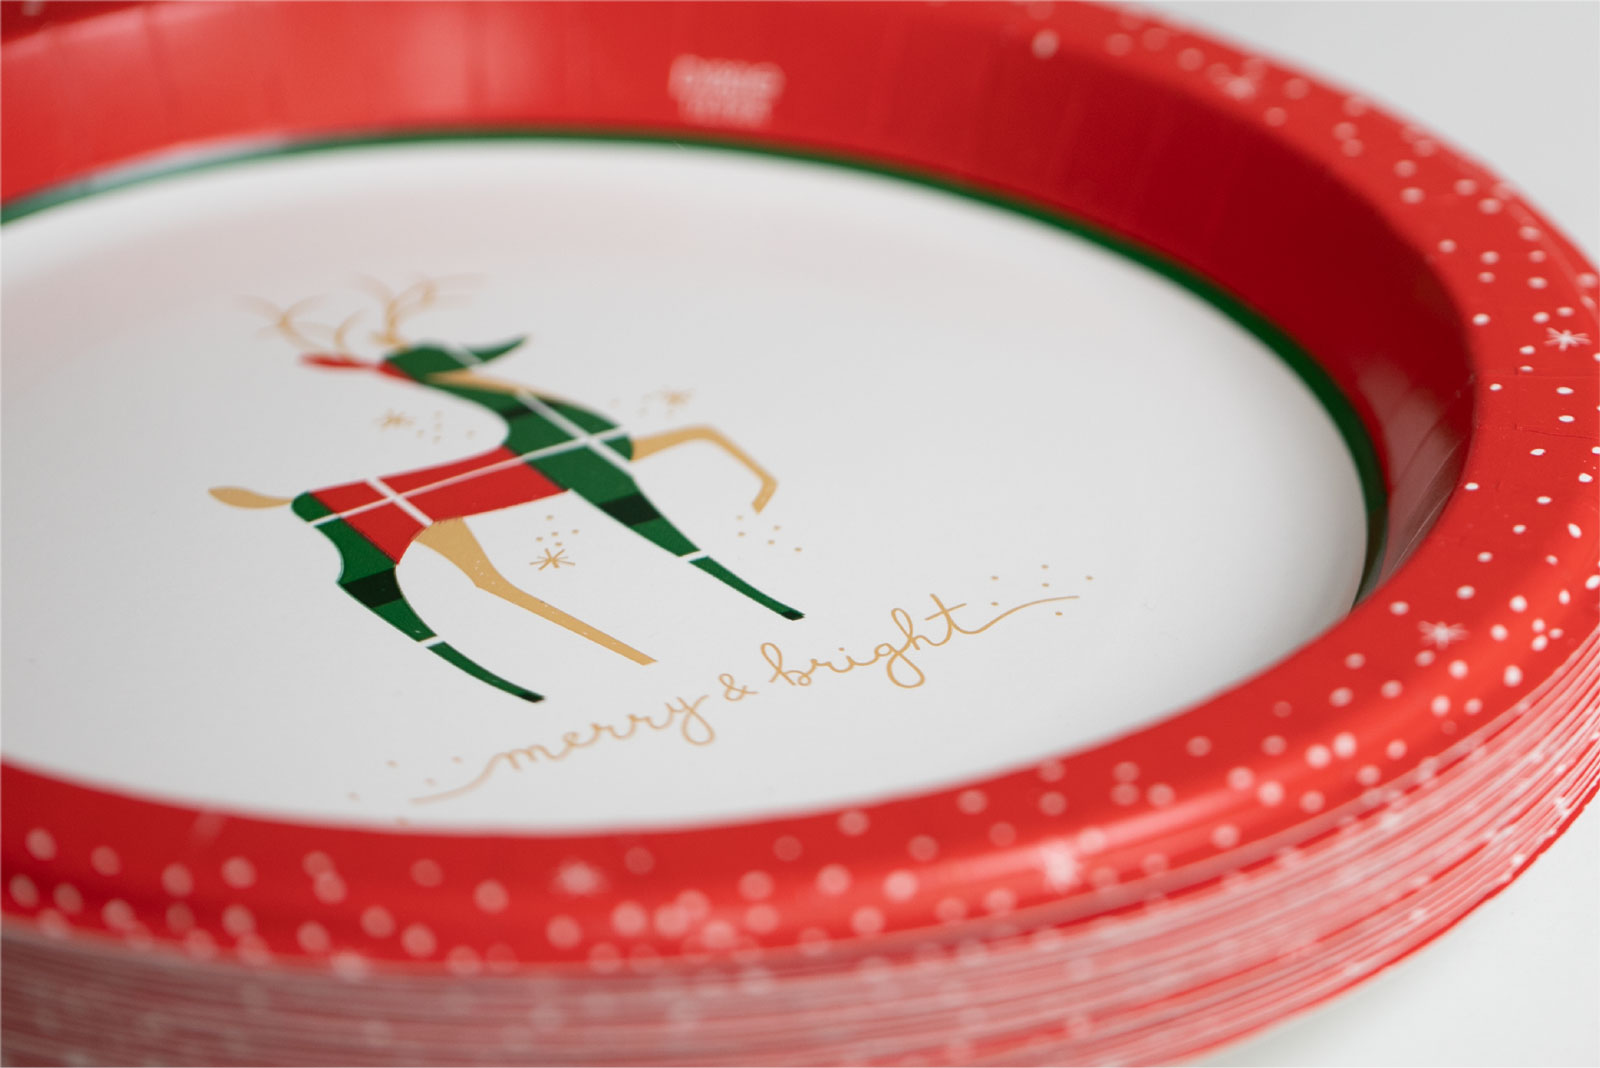 Dixie Holiday Plates - Surface Design